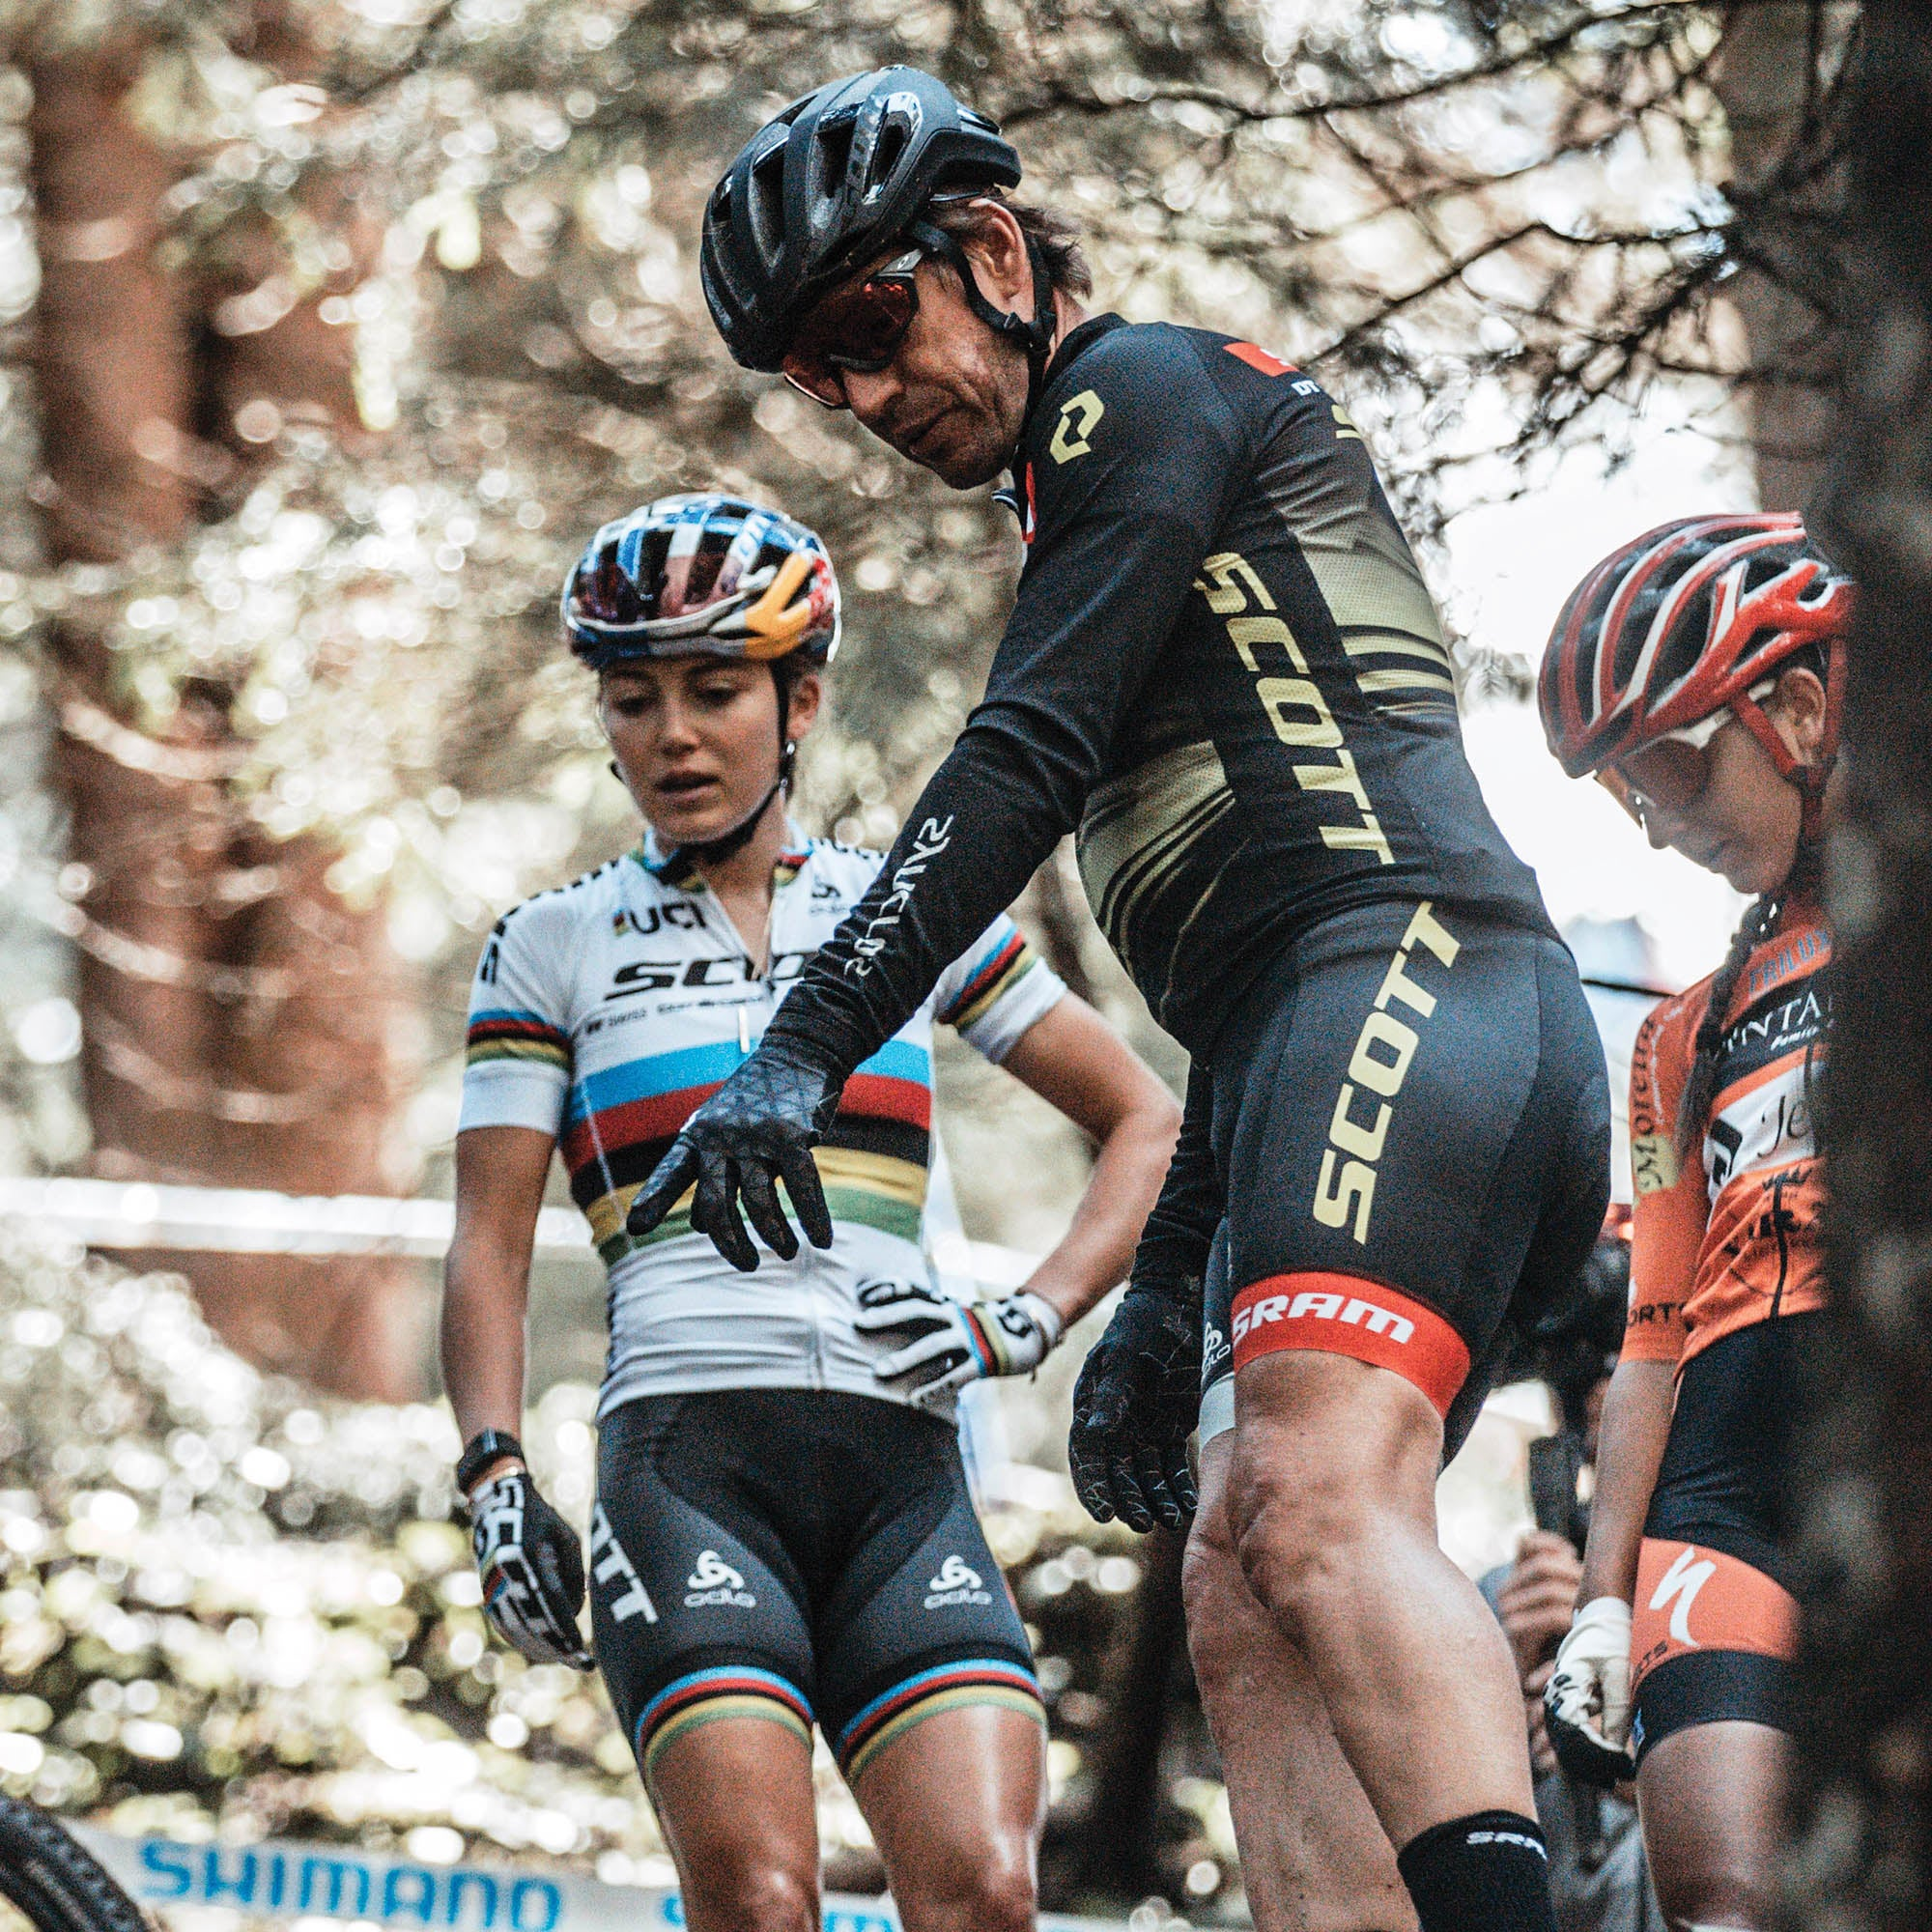 Kate Courtney and Frischi looking down an mtb jump